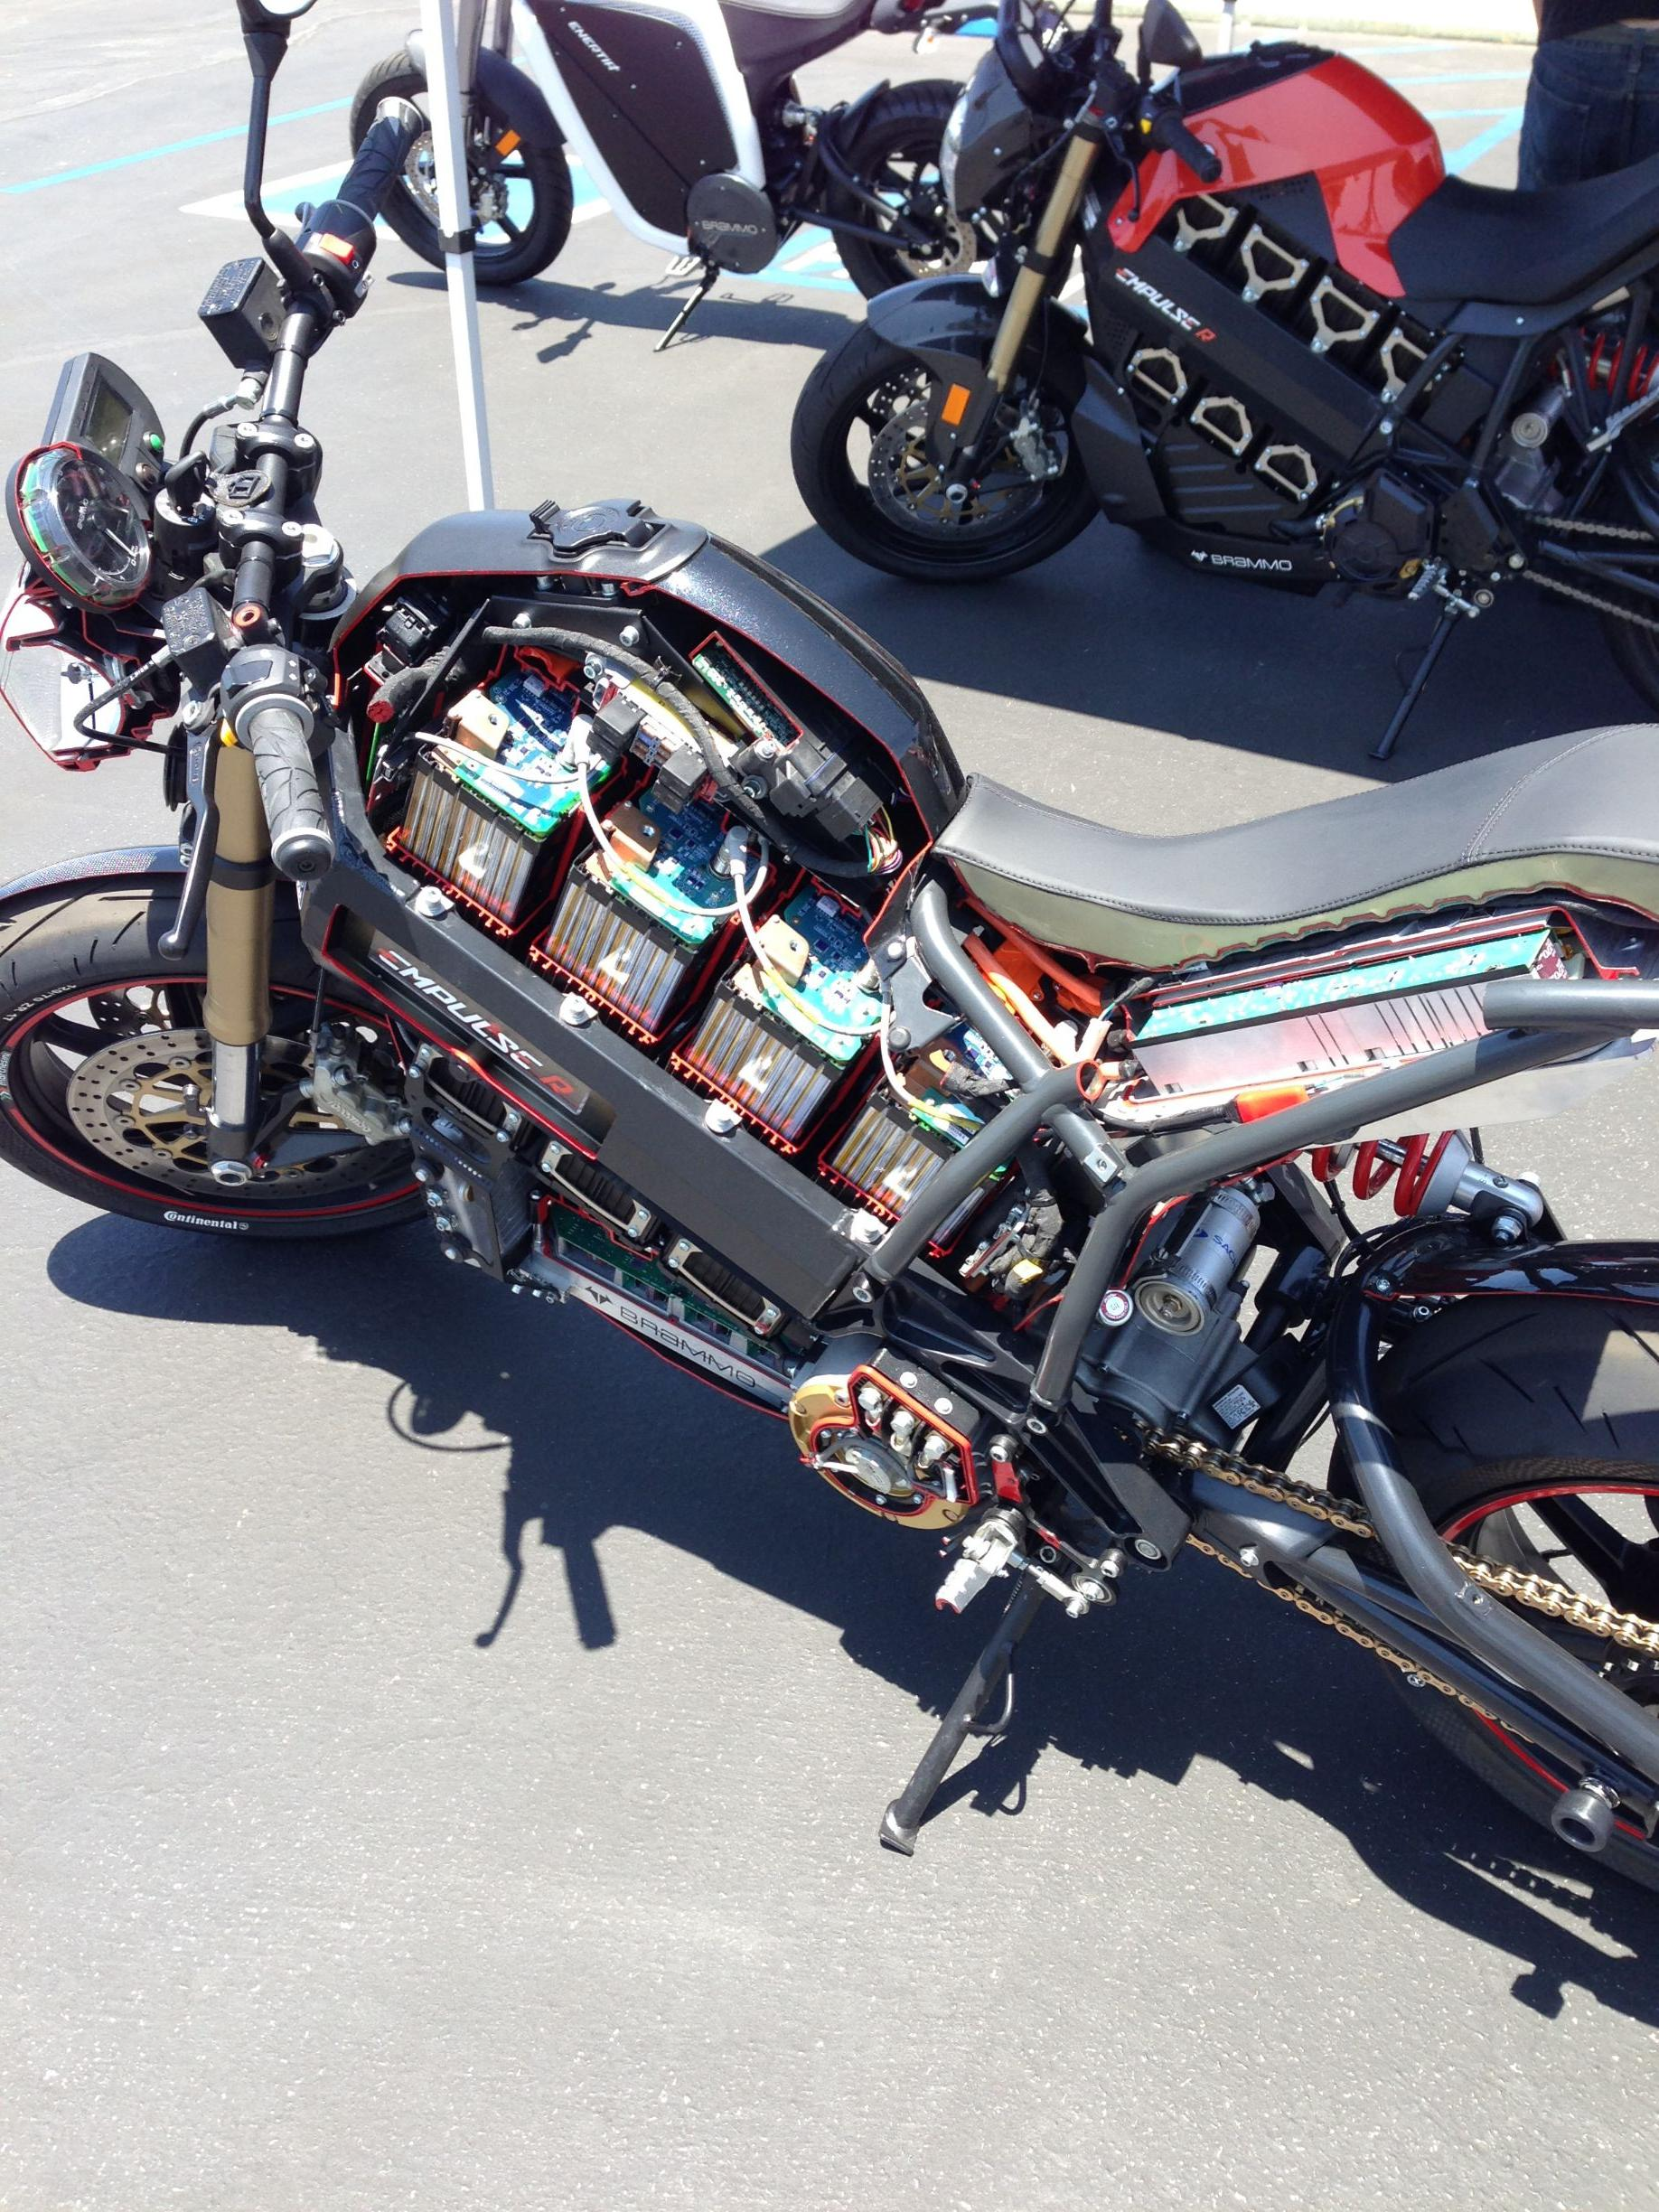 Inside of an electric motorcycle